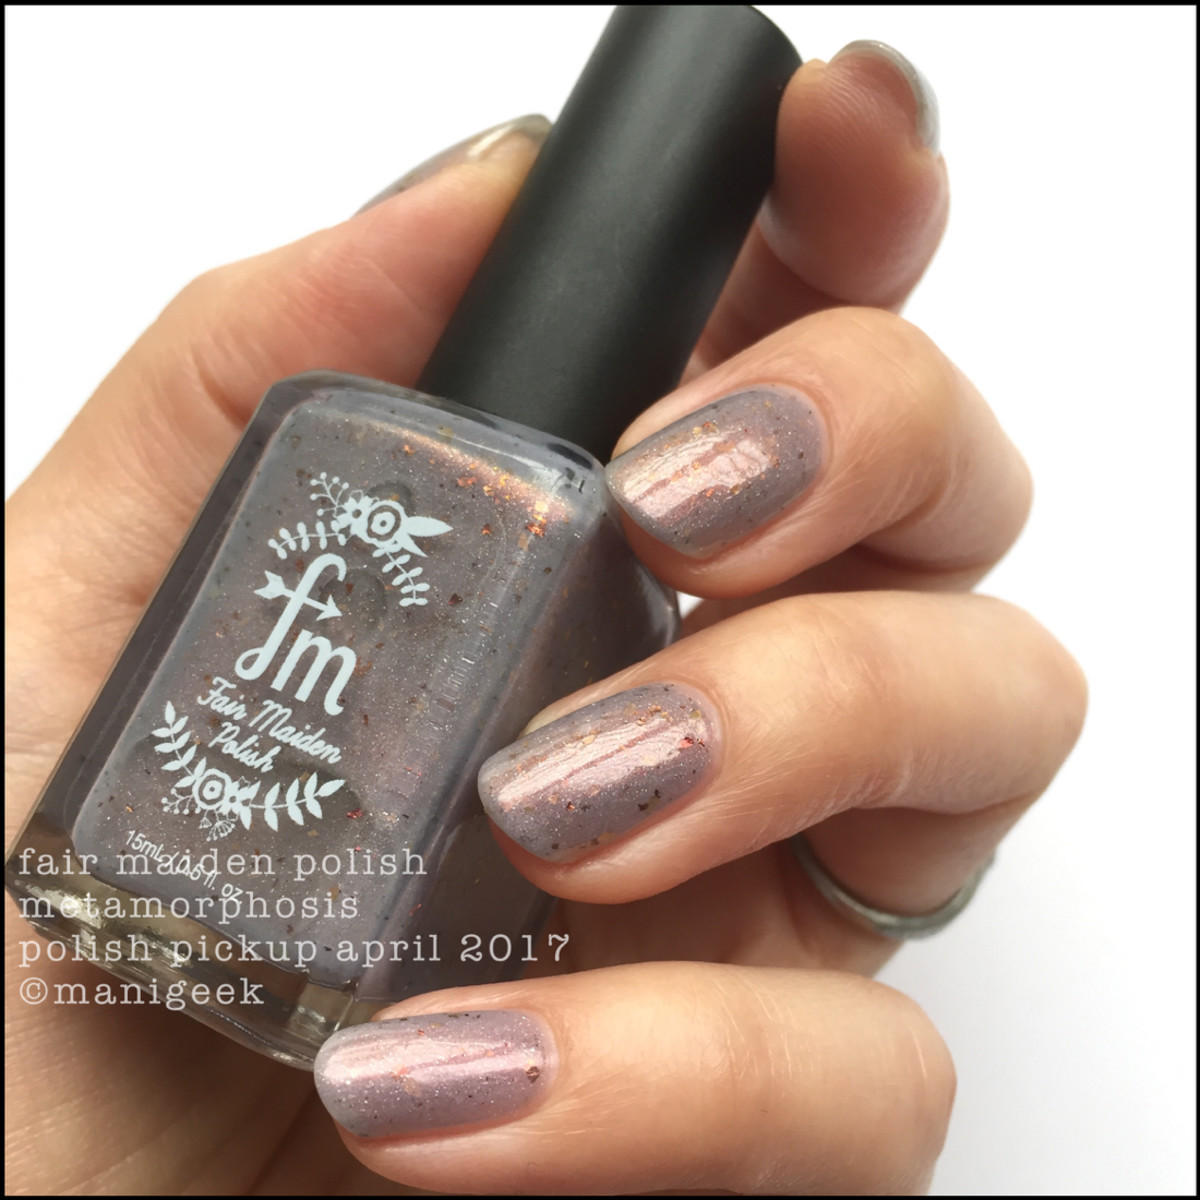 Fair Maiden Polish Metamorphosis 2_Polish Pickup April 2017